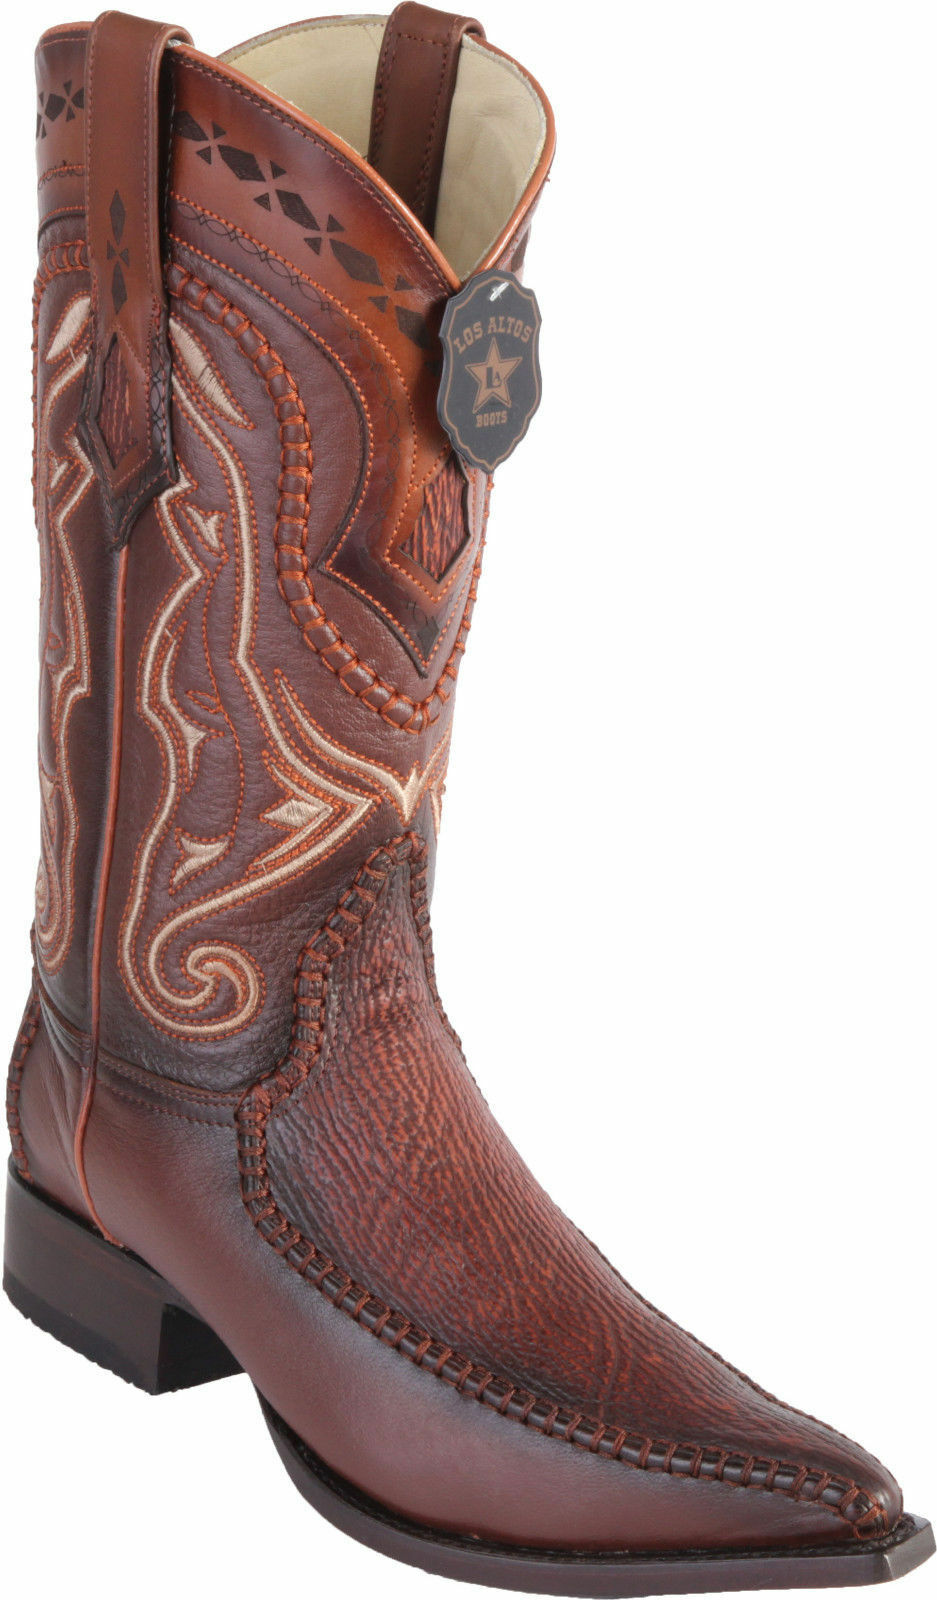 LOS ALTOS COGNAC GENUINE SHARK 3X TOE WESTERN COWBOY BOOT EE+